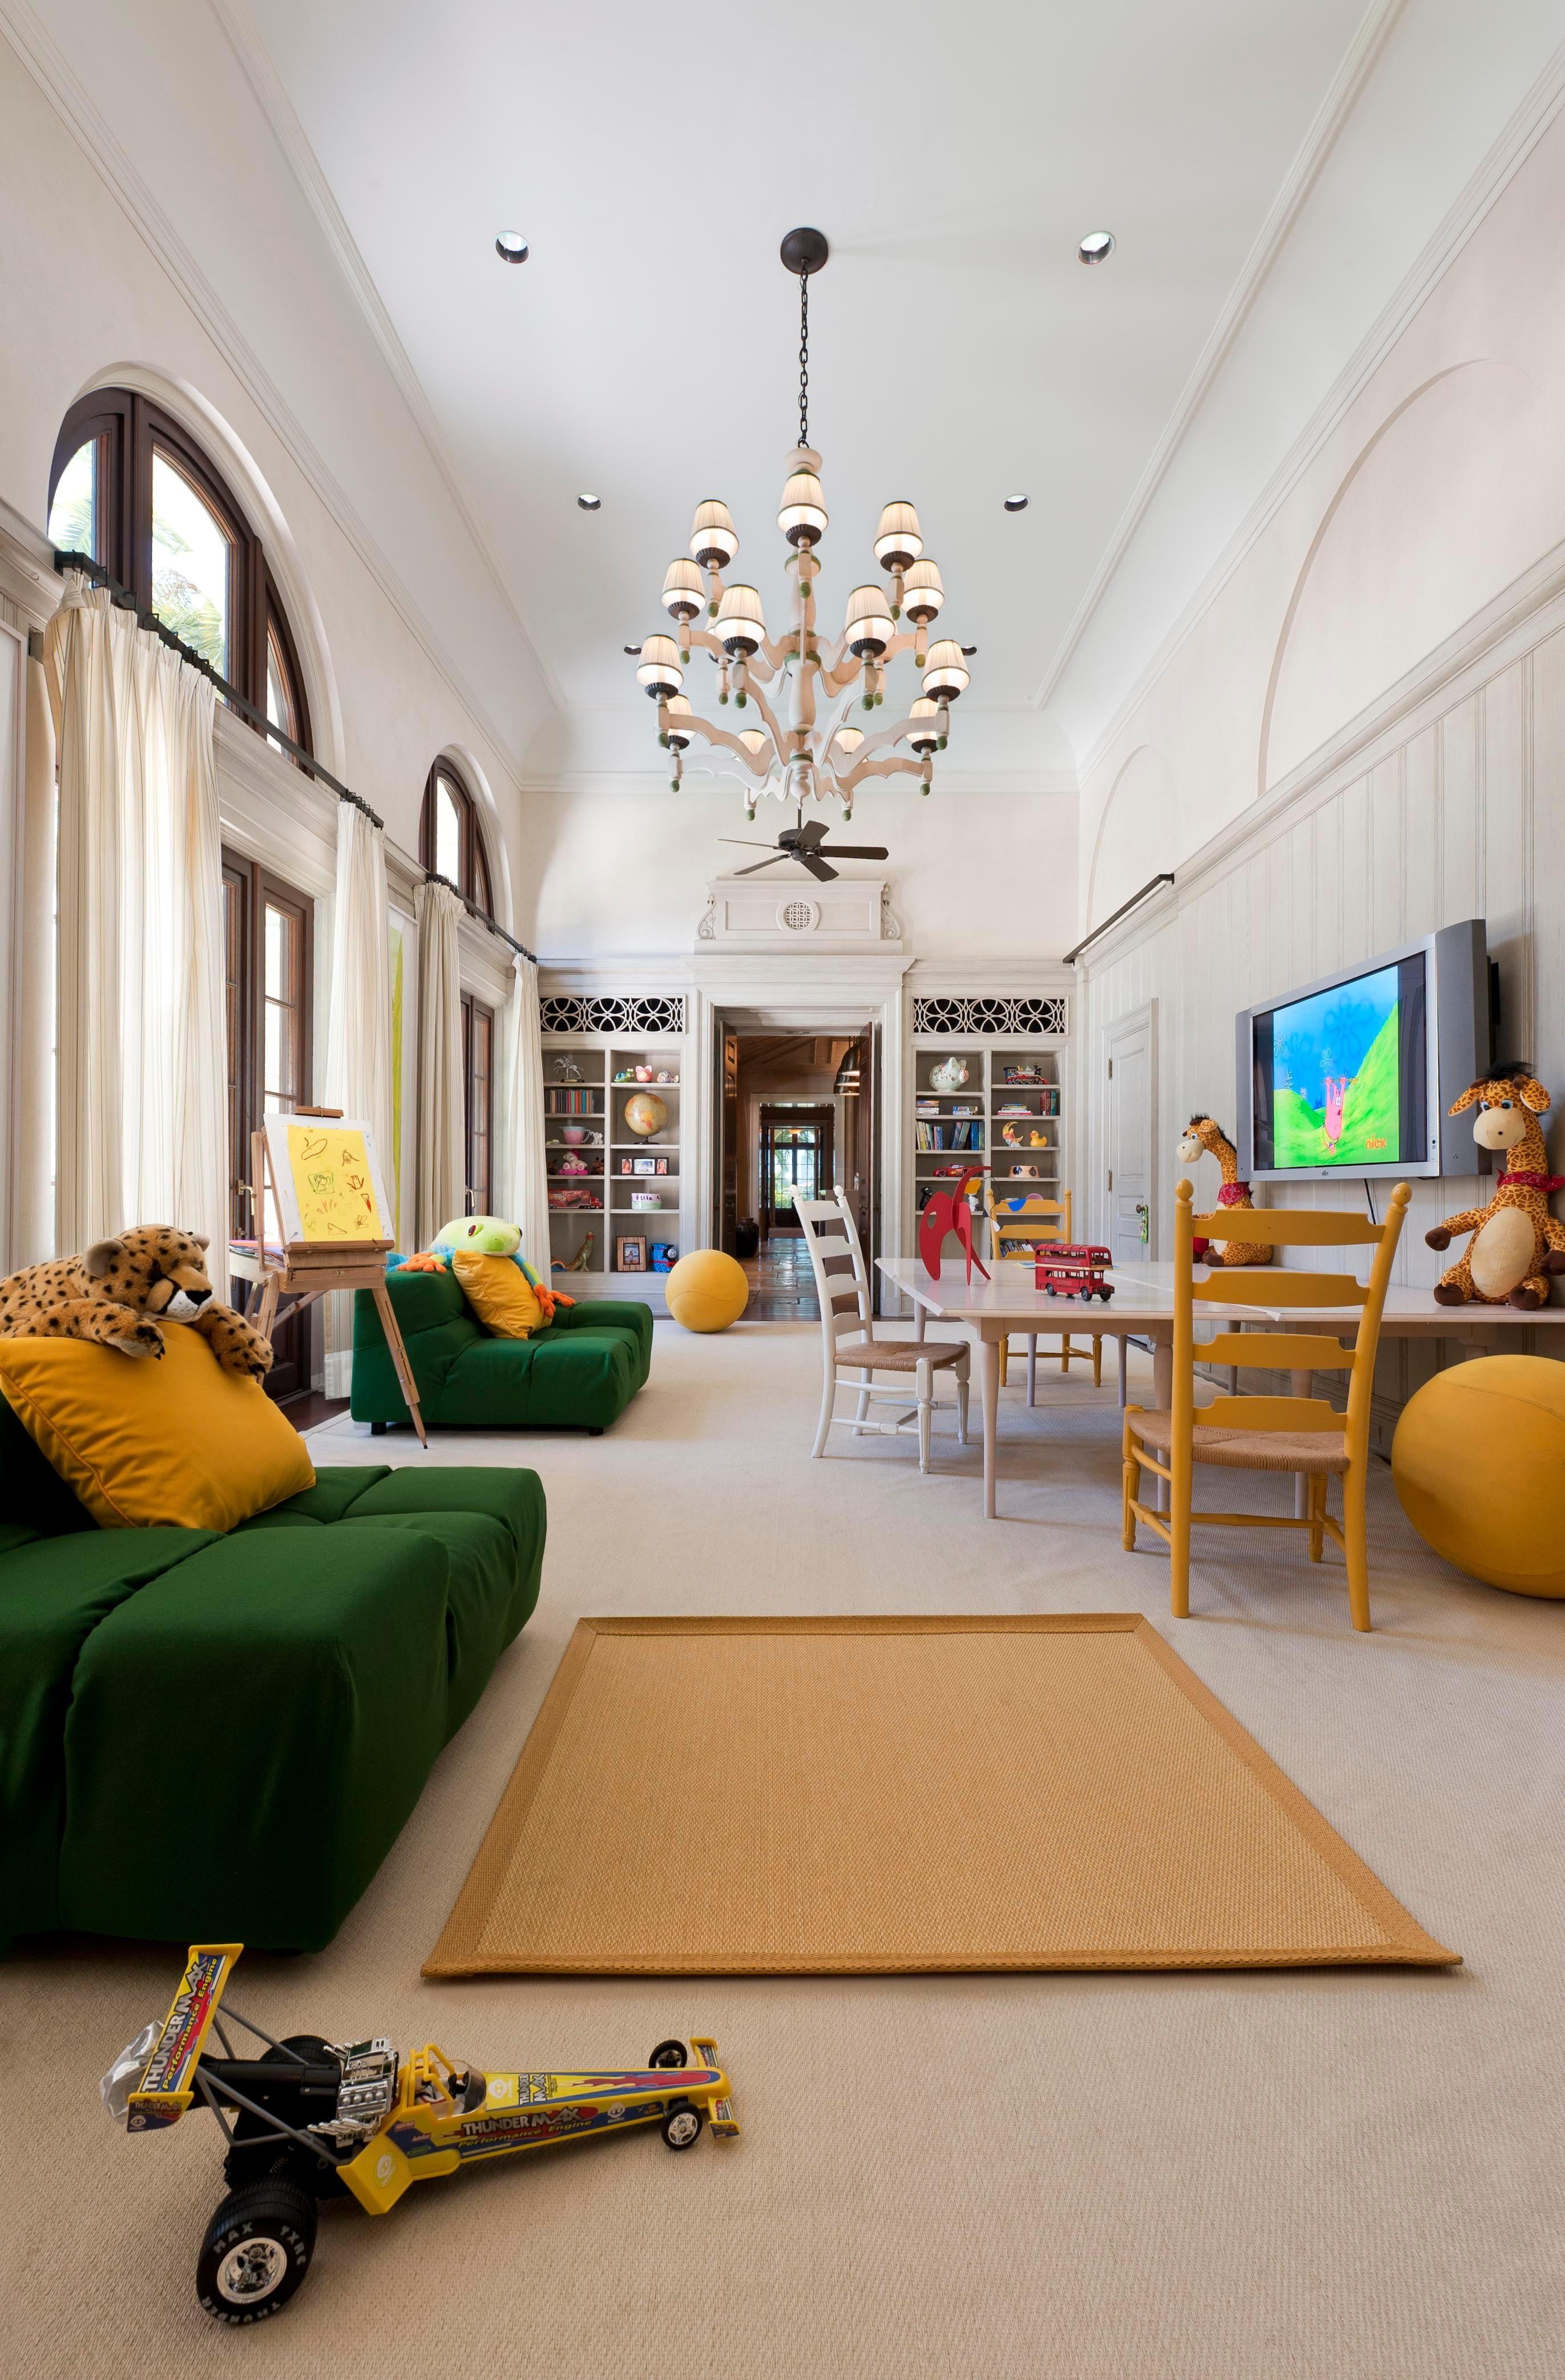 Interior Architecture Of Miami Indian Creek Home Featured In Architectural  Digest U2013 Playroom